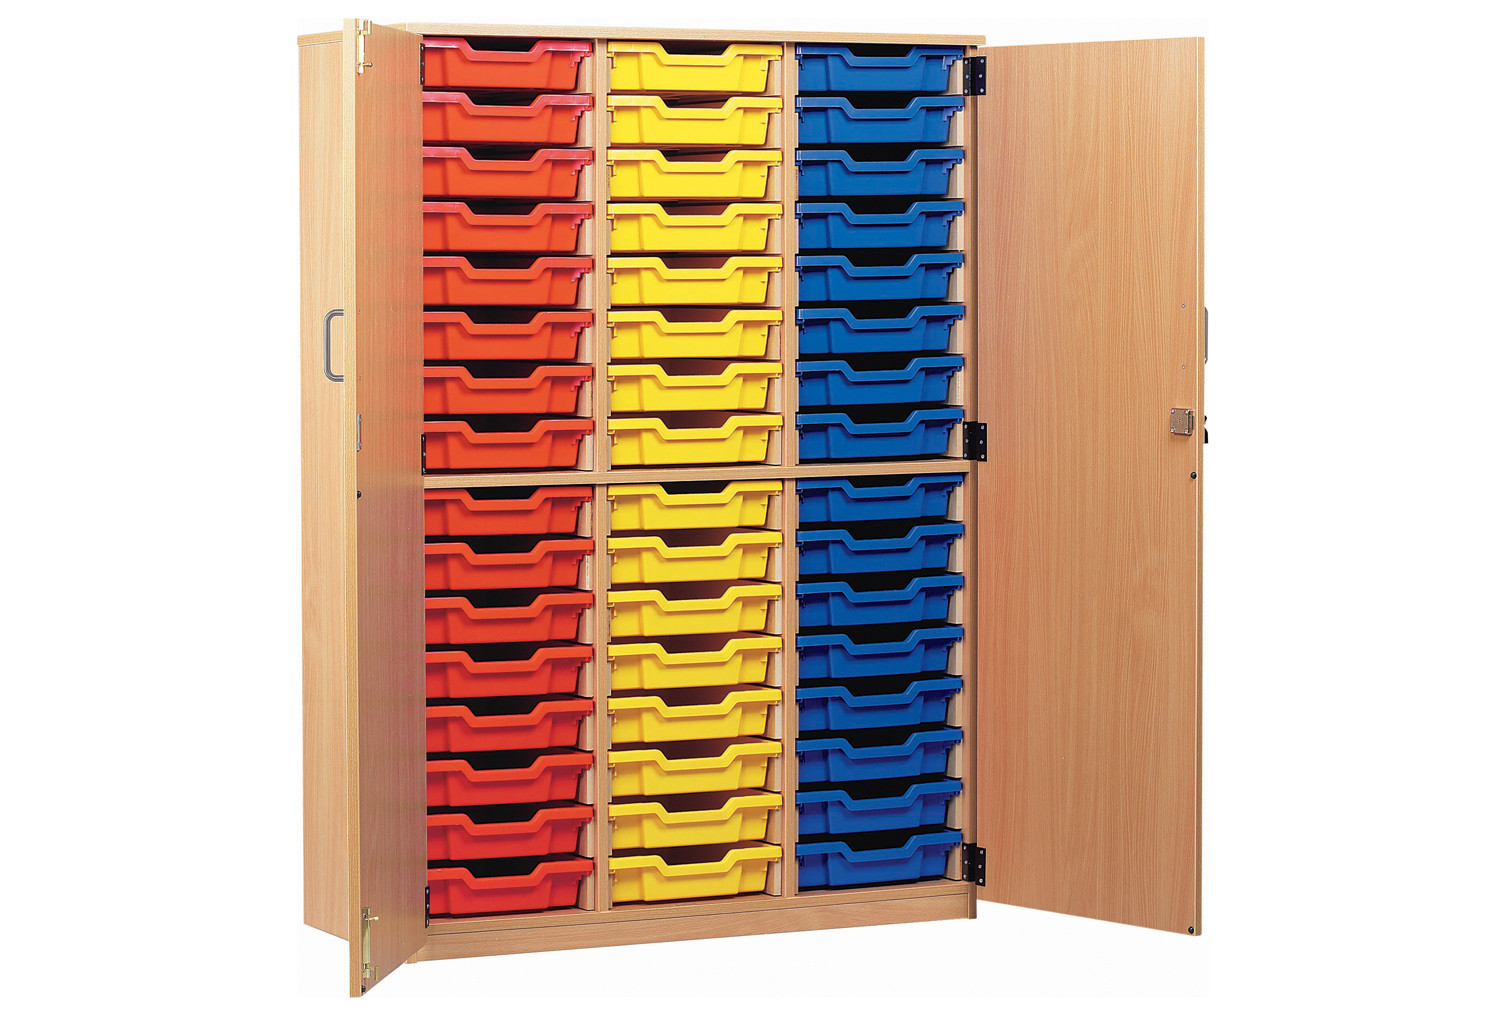 48 tray storage cupboard with full doors